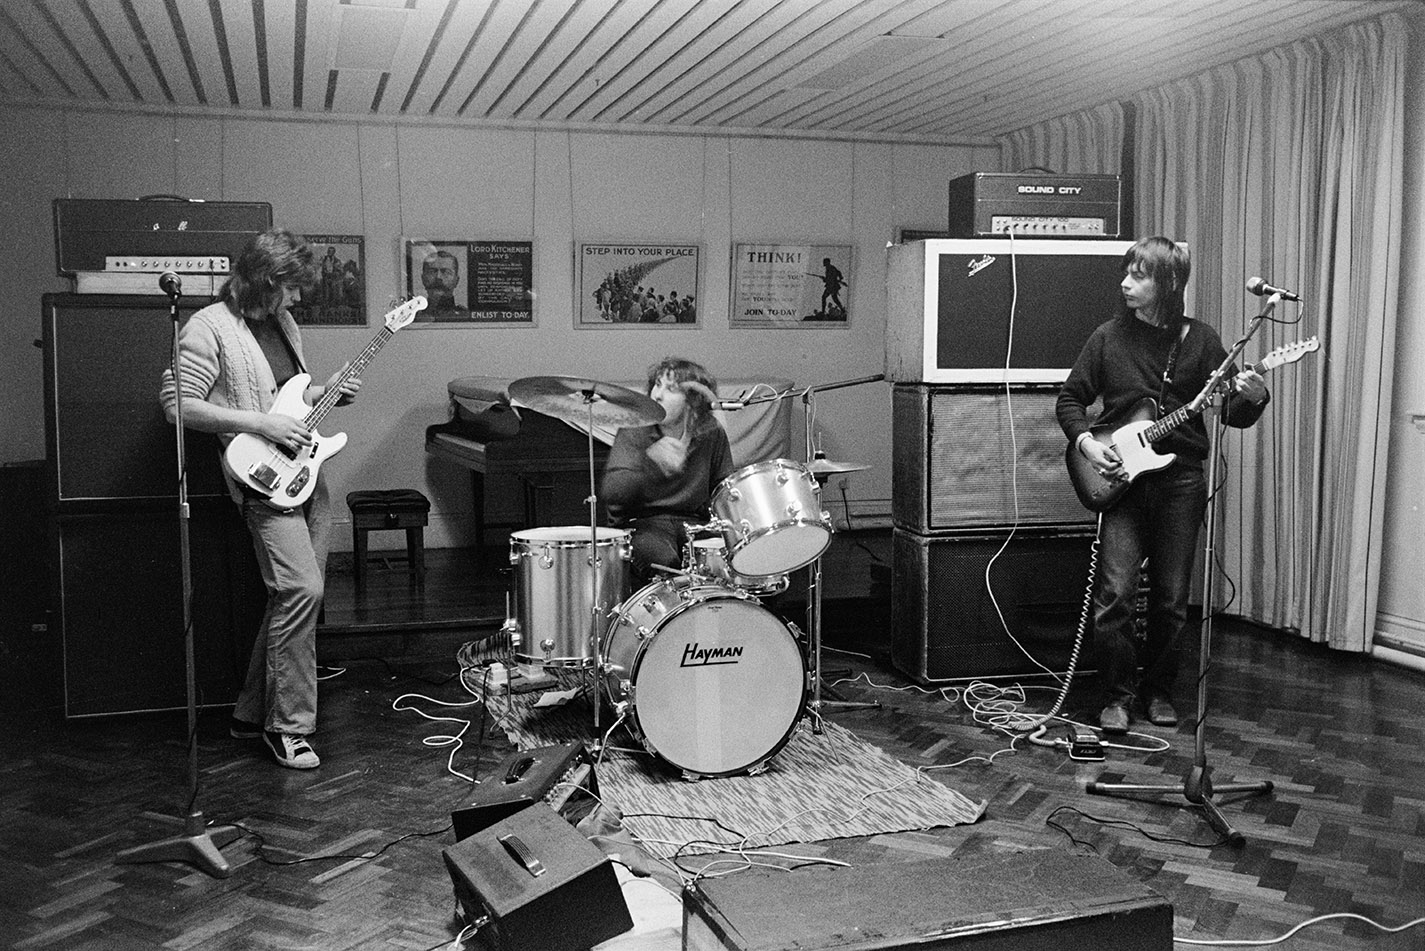 Band practising in hall. Documentary photograph by Roger Deakins for the Beaford Archive © Beaford Arts